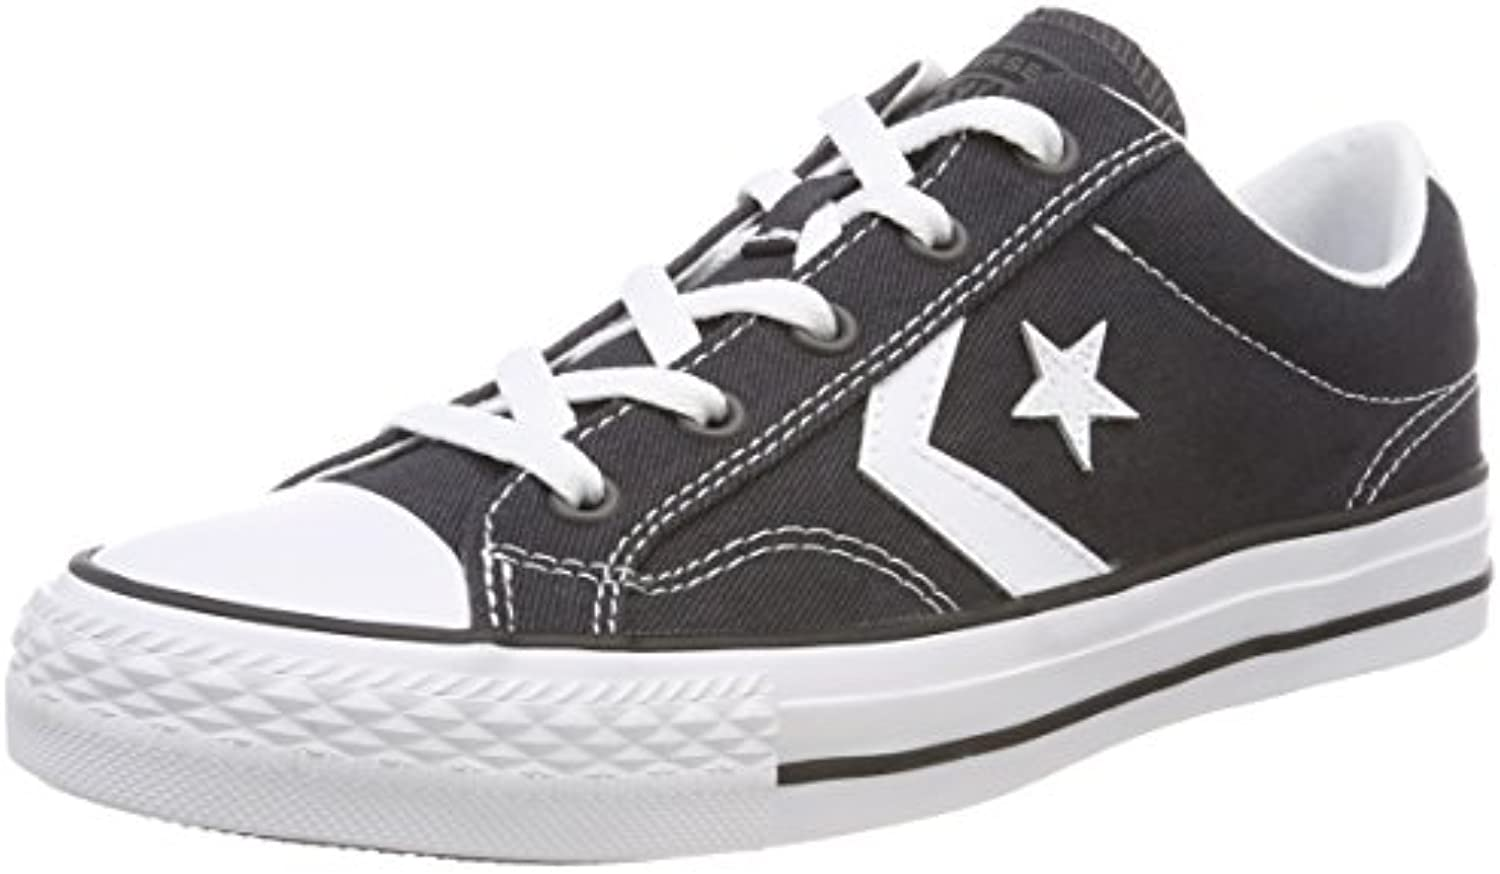 Converse Star Player Ox Almost White/Black, Zapatillas Unisex Adulto